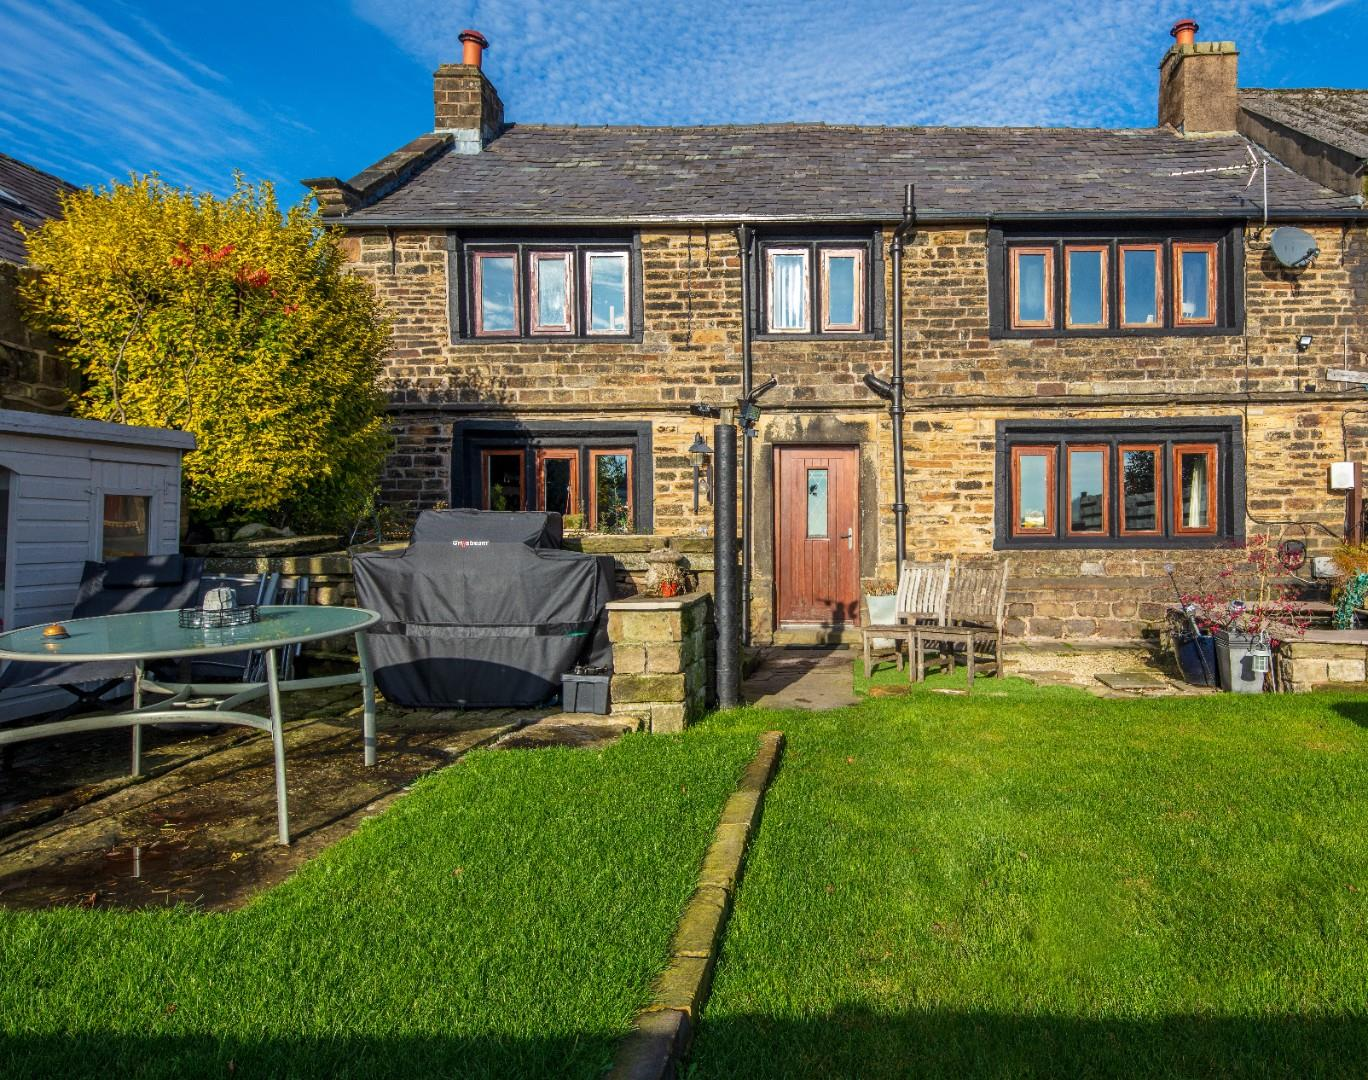 Whitewall Cottage Sunny-04a.jpg